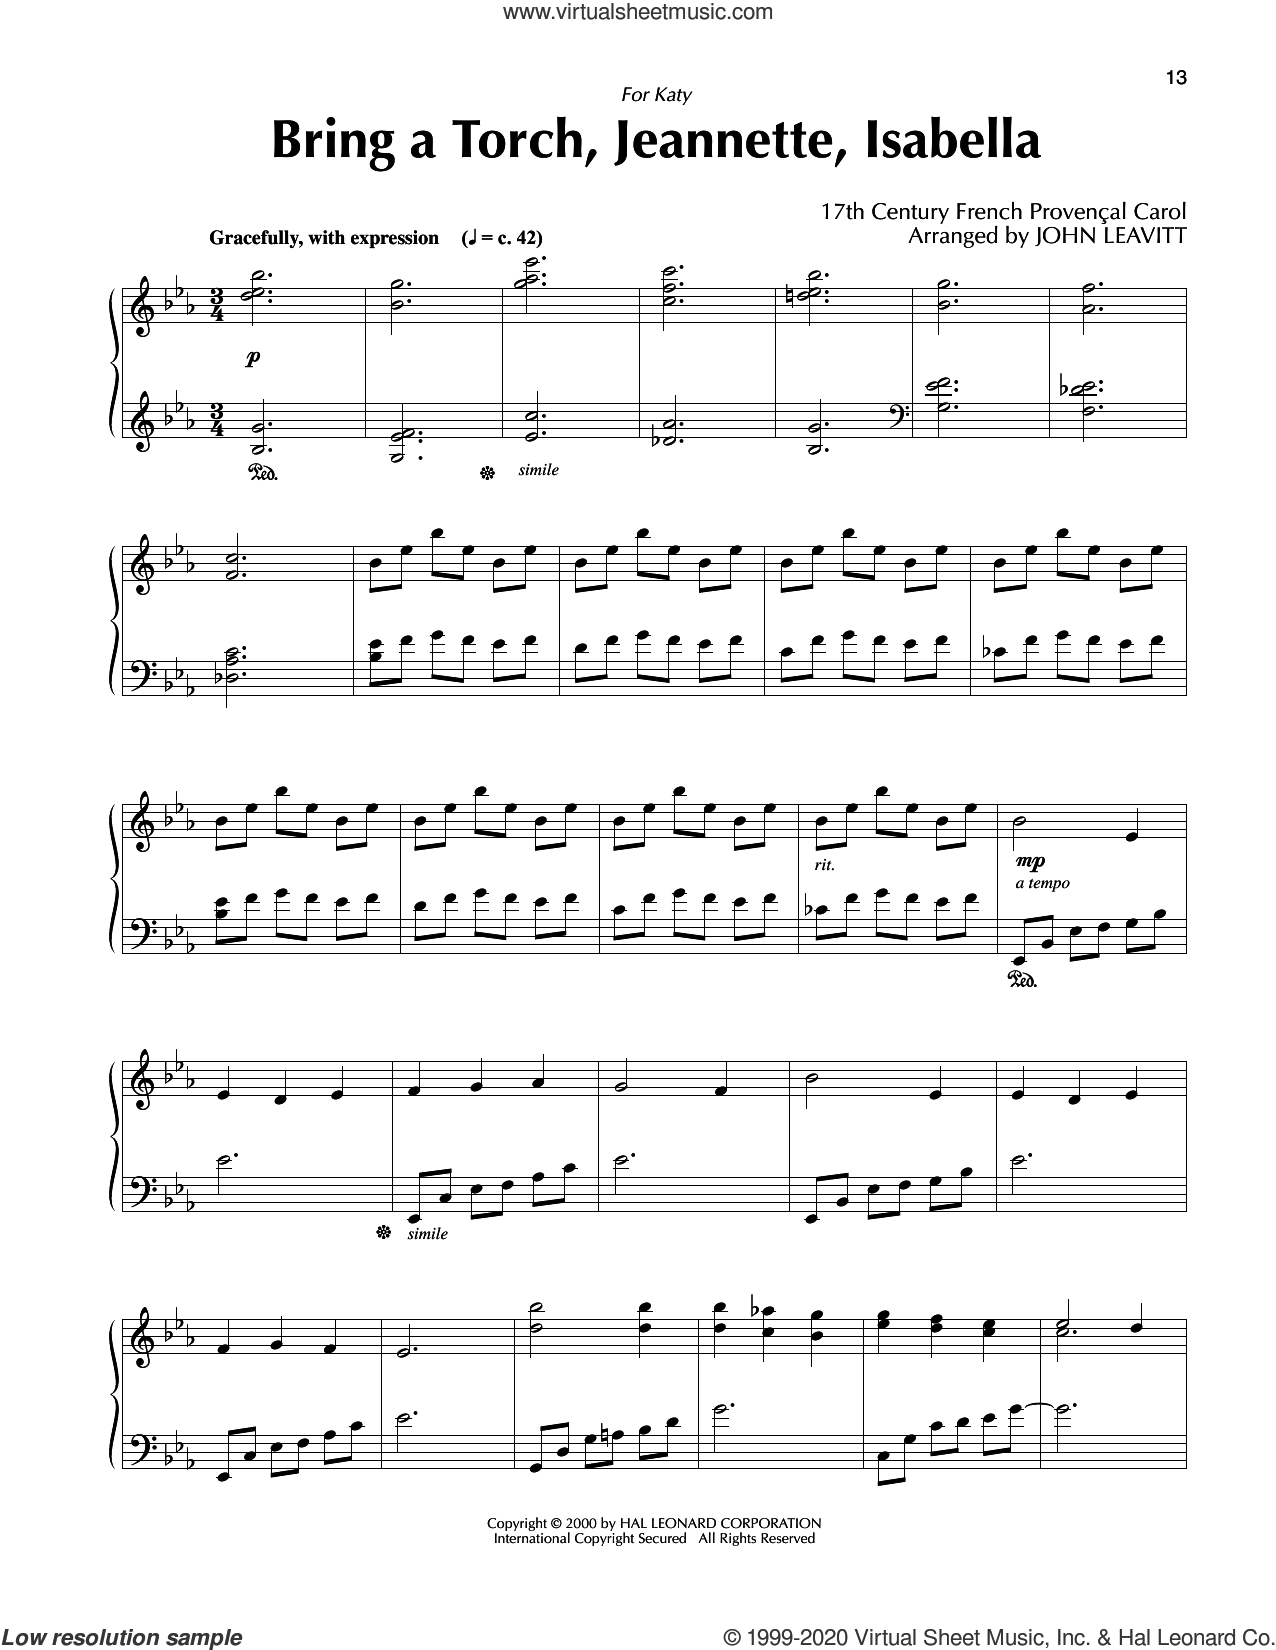 Bring A Torch, Jeannette, Isabella (arr. John Leavitt) sheet music for piano solo by Anonymous, John Leavitt and Miscellaneous, intermediate skill level